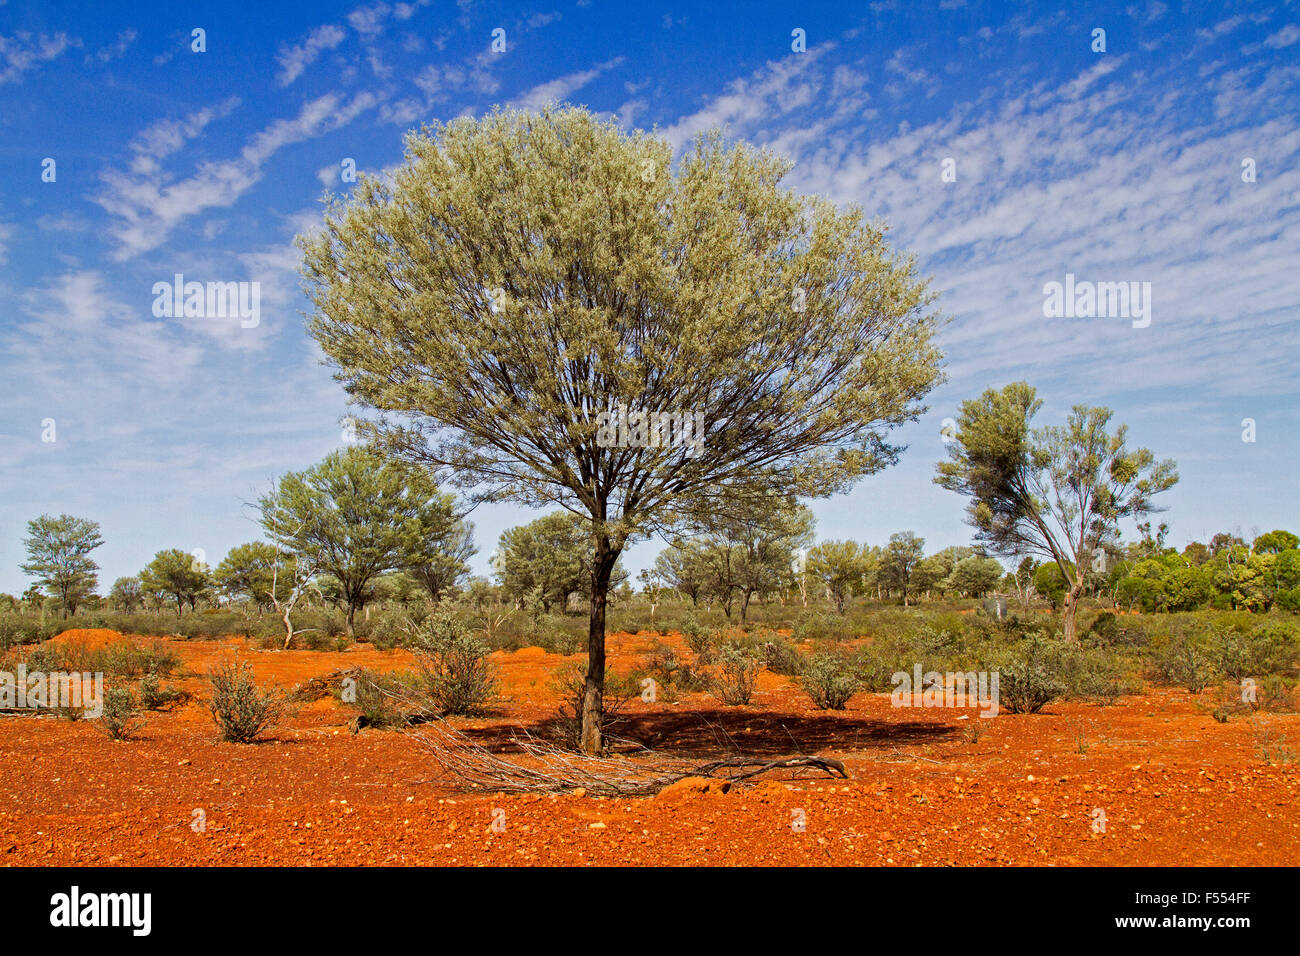 Large Mulga Tree Acacia Aneura Growing In Red Soil Of Outback Stock